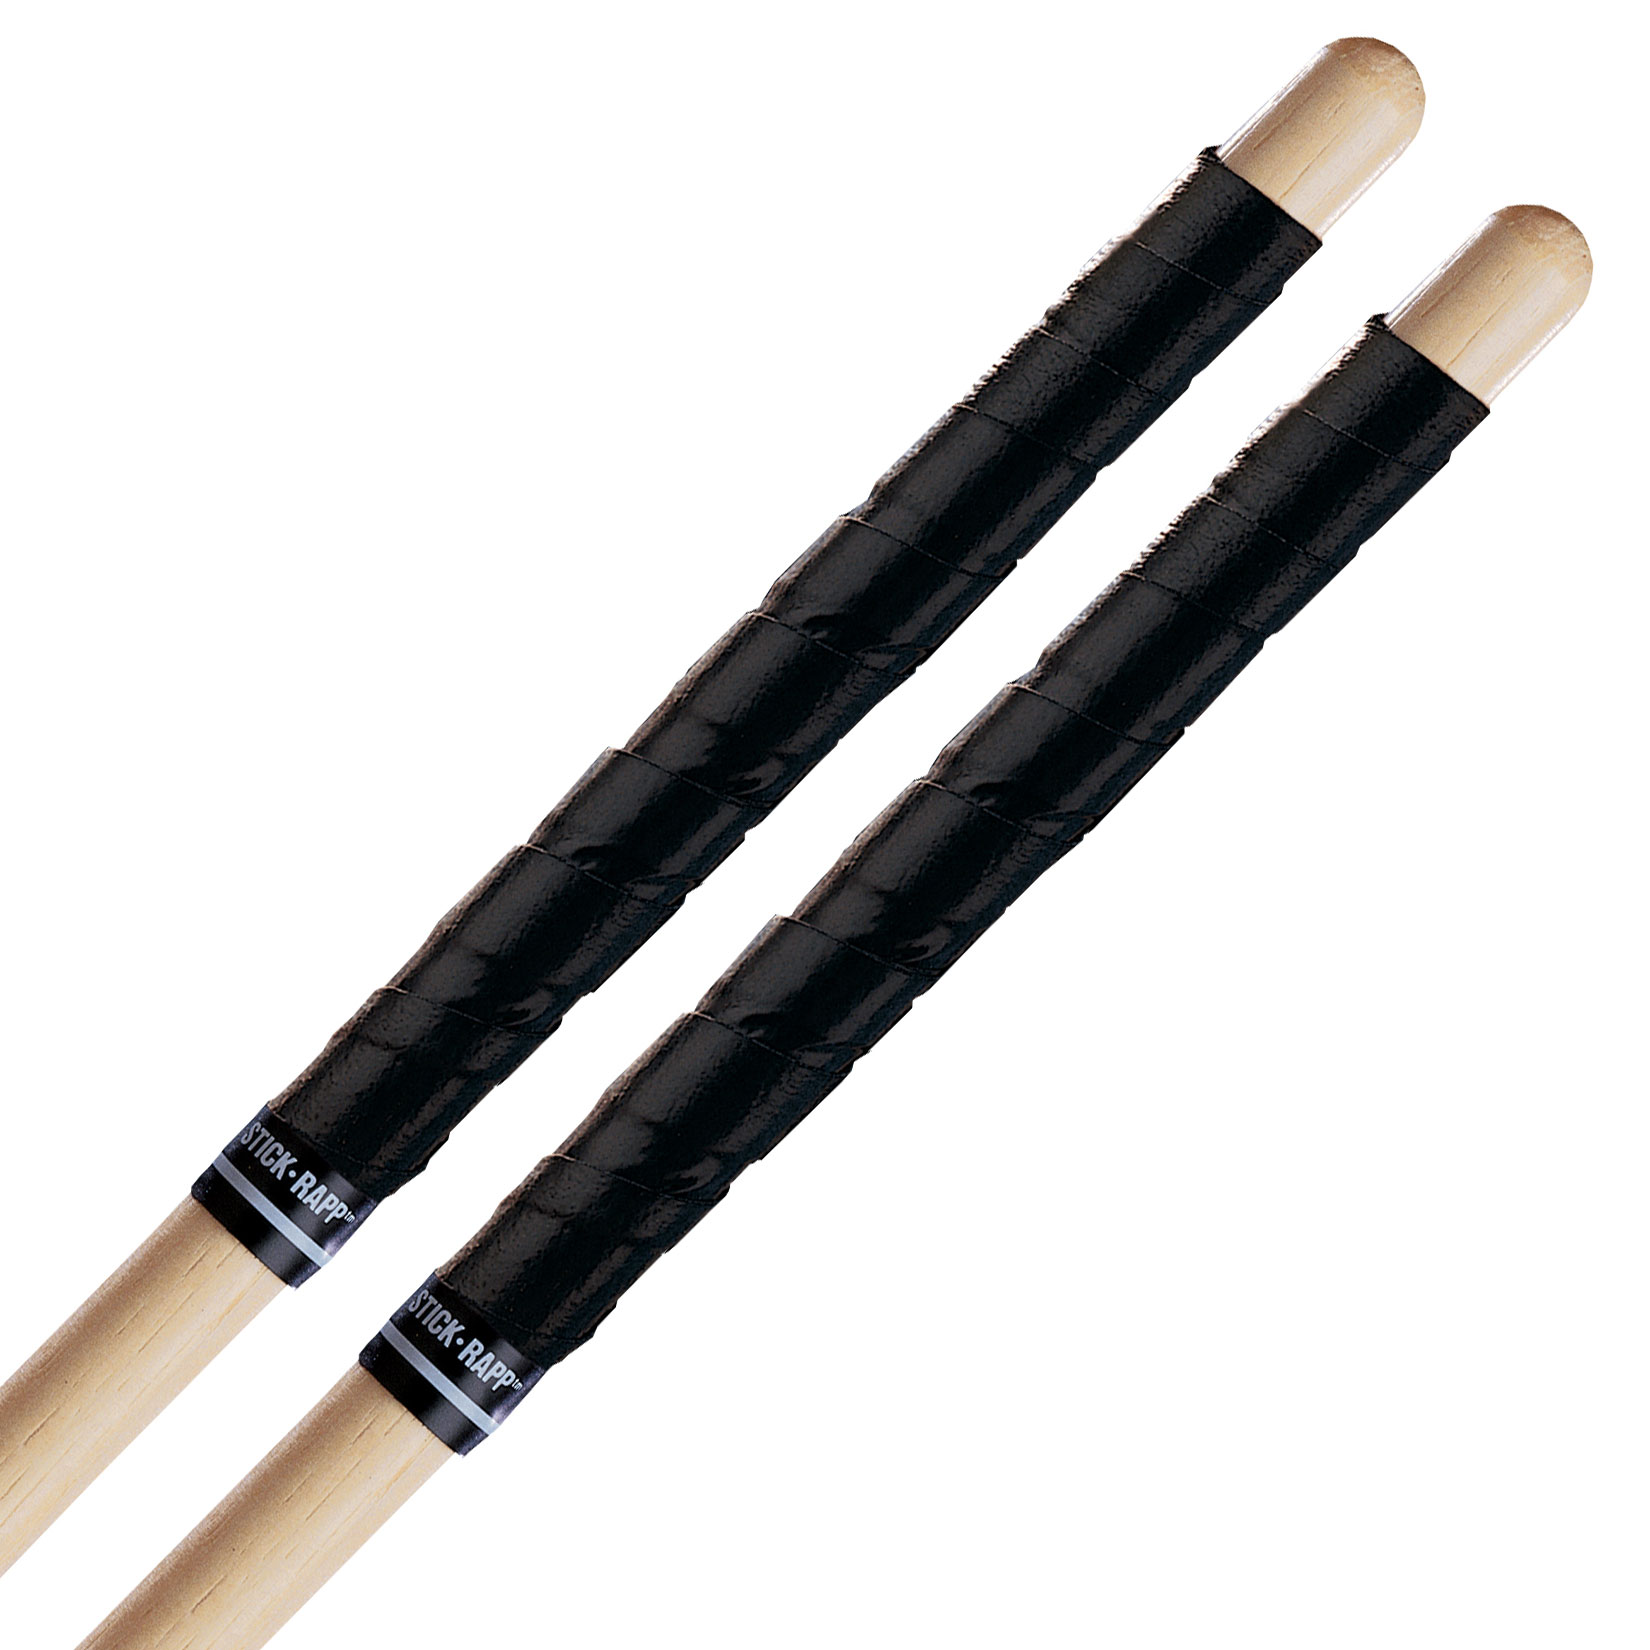 Promark Solid Black Stick Rapp